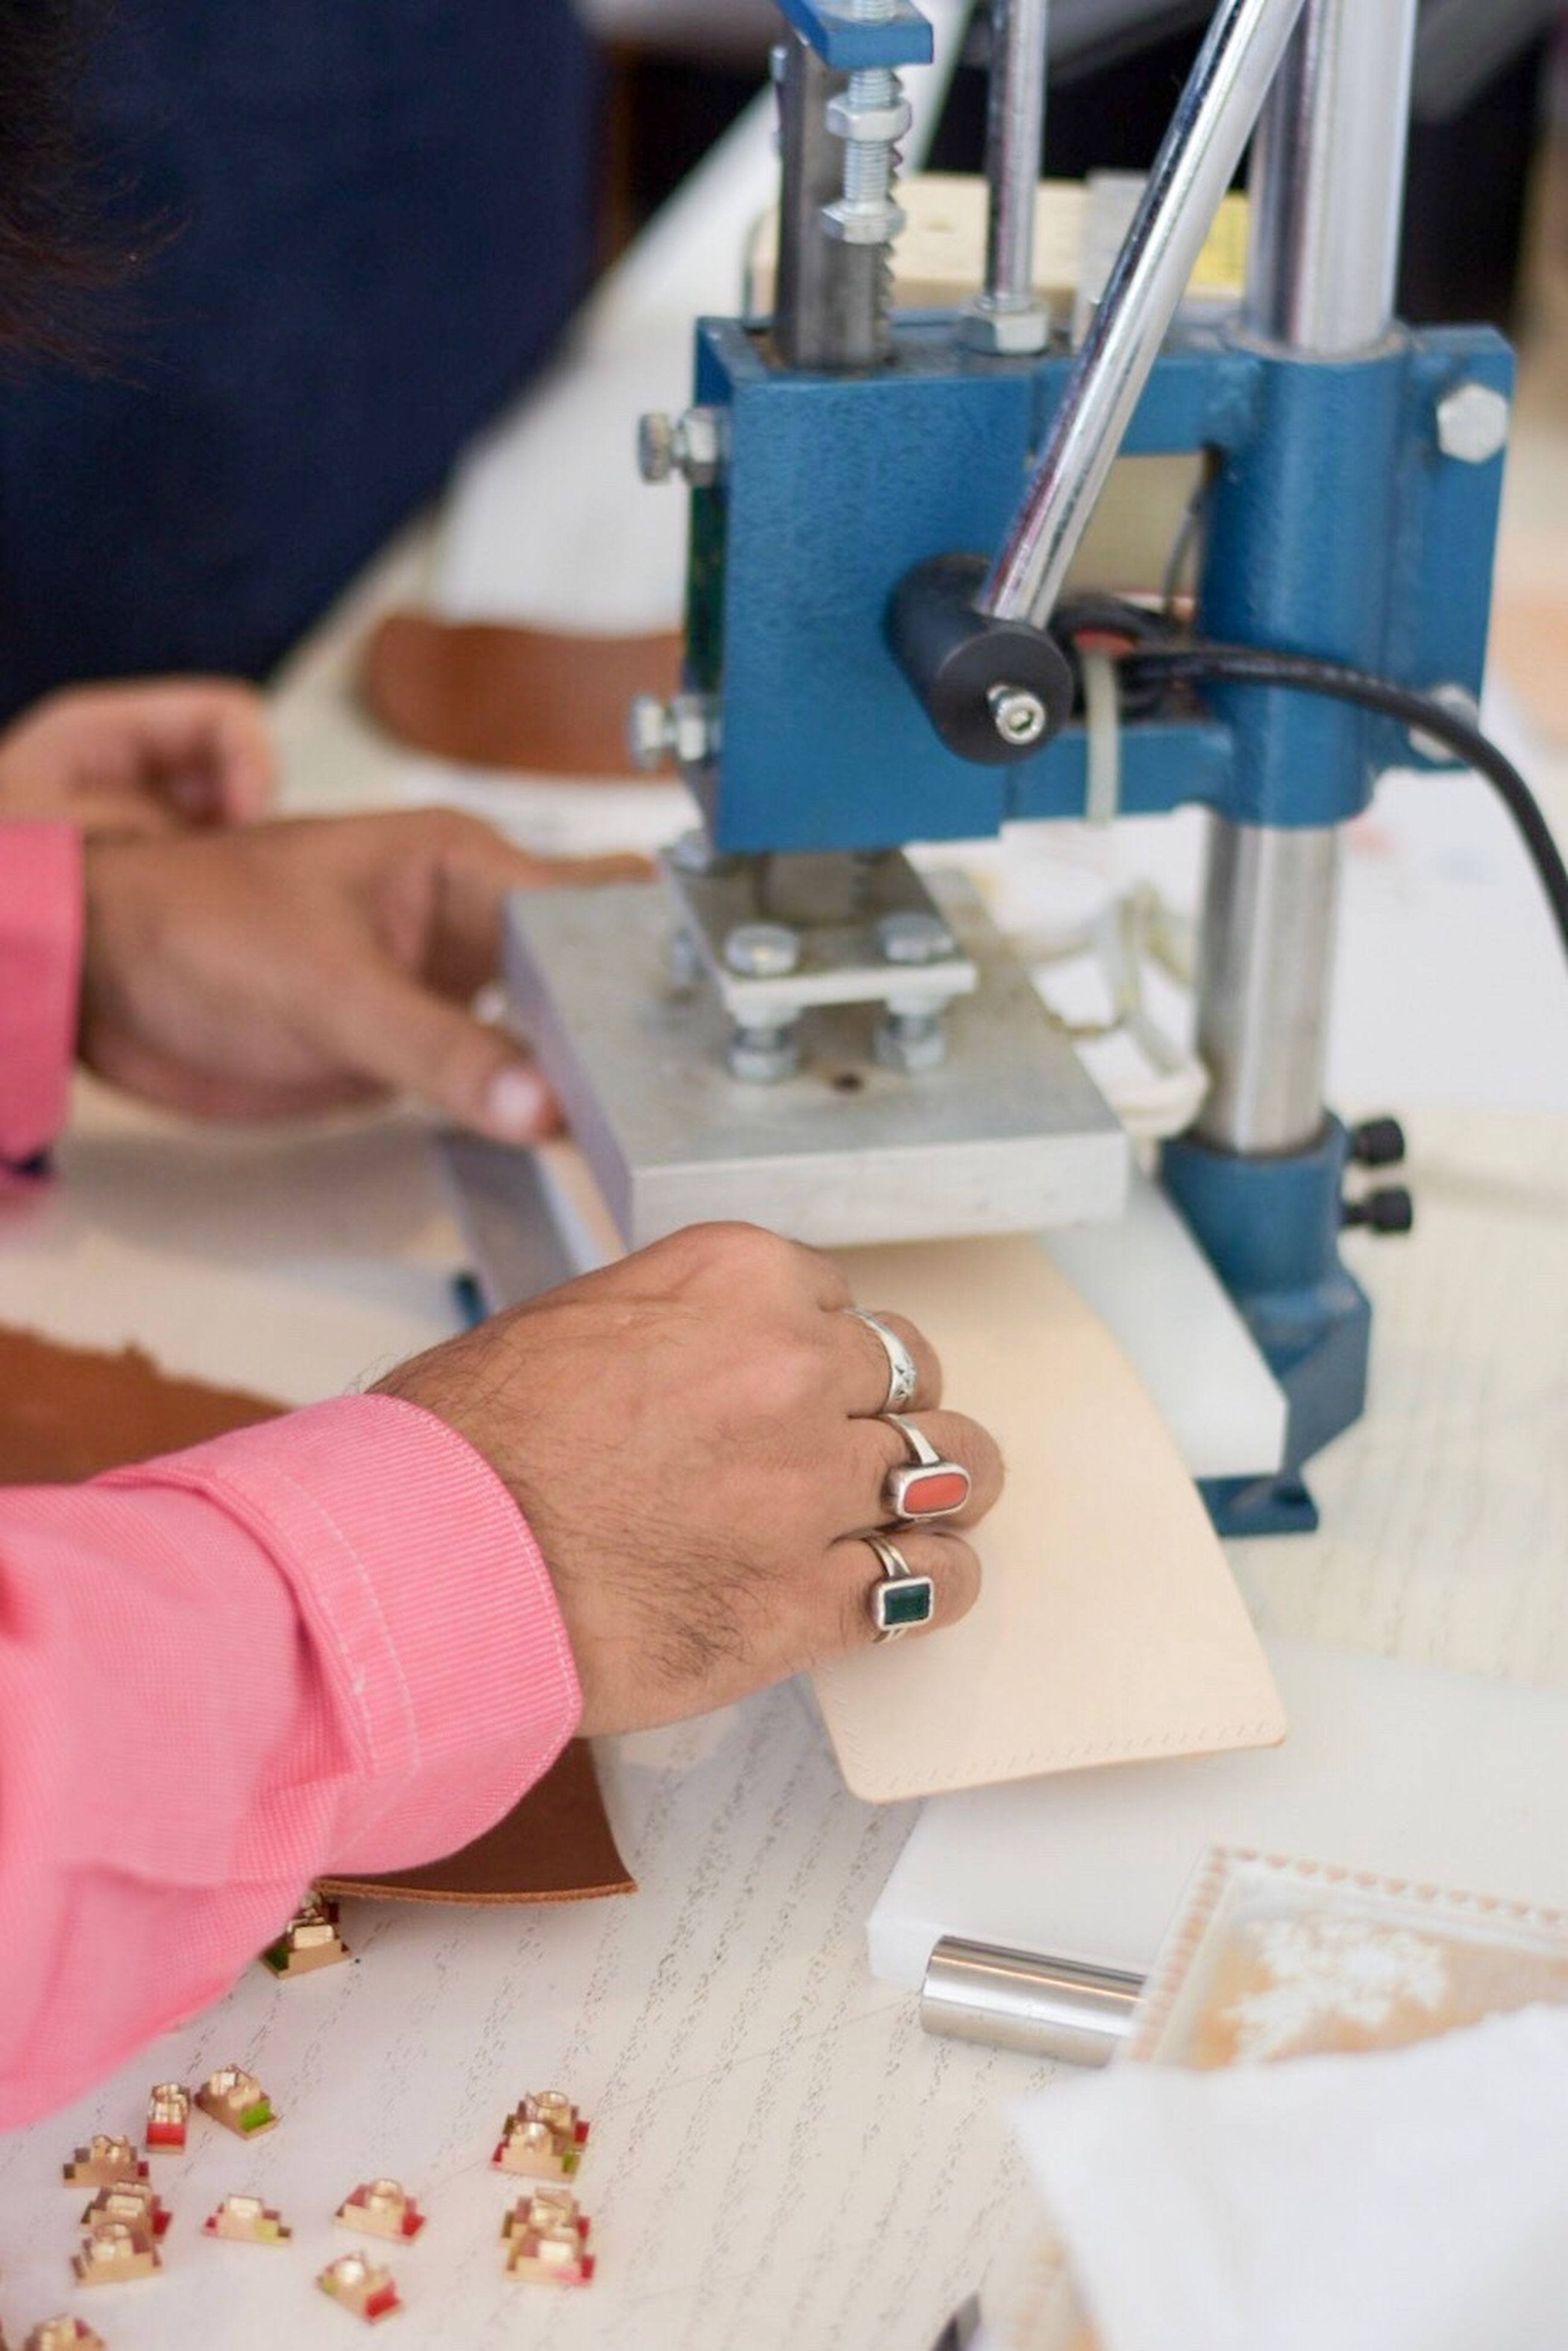 craft, occupation, accuracy, skill, working, craftsperson, business finance and industry, adults only, workshop, indoors, close-up, sewing machine, women, only women, industry, people, adult, human hand, human body part, one person, day